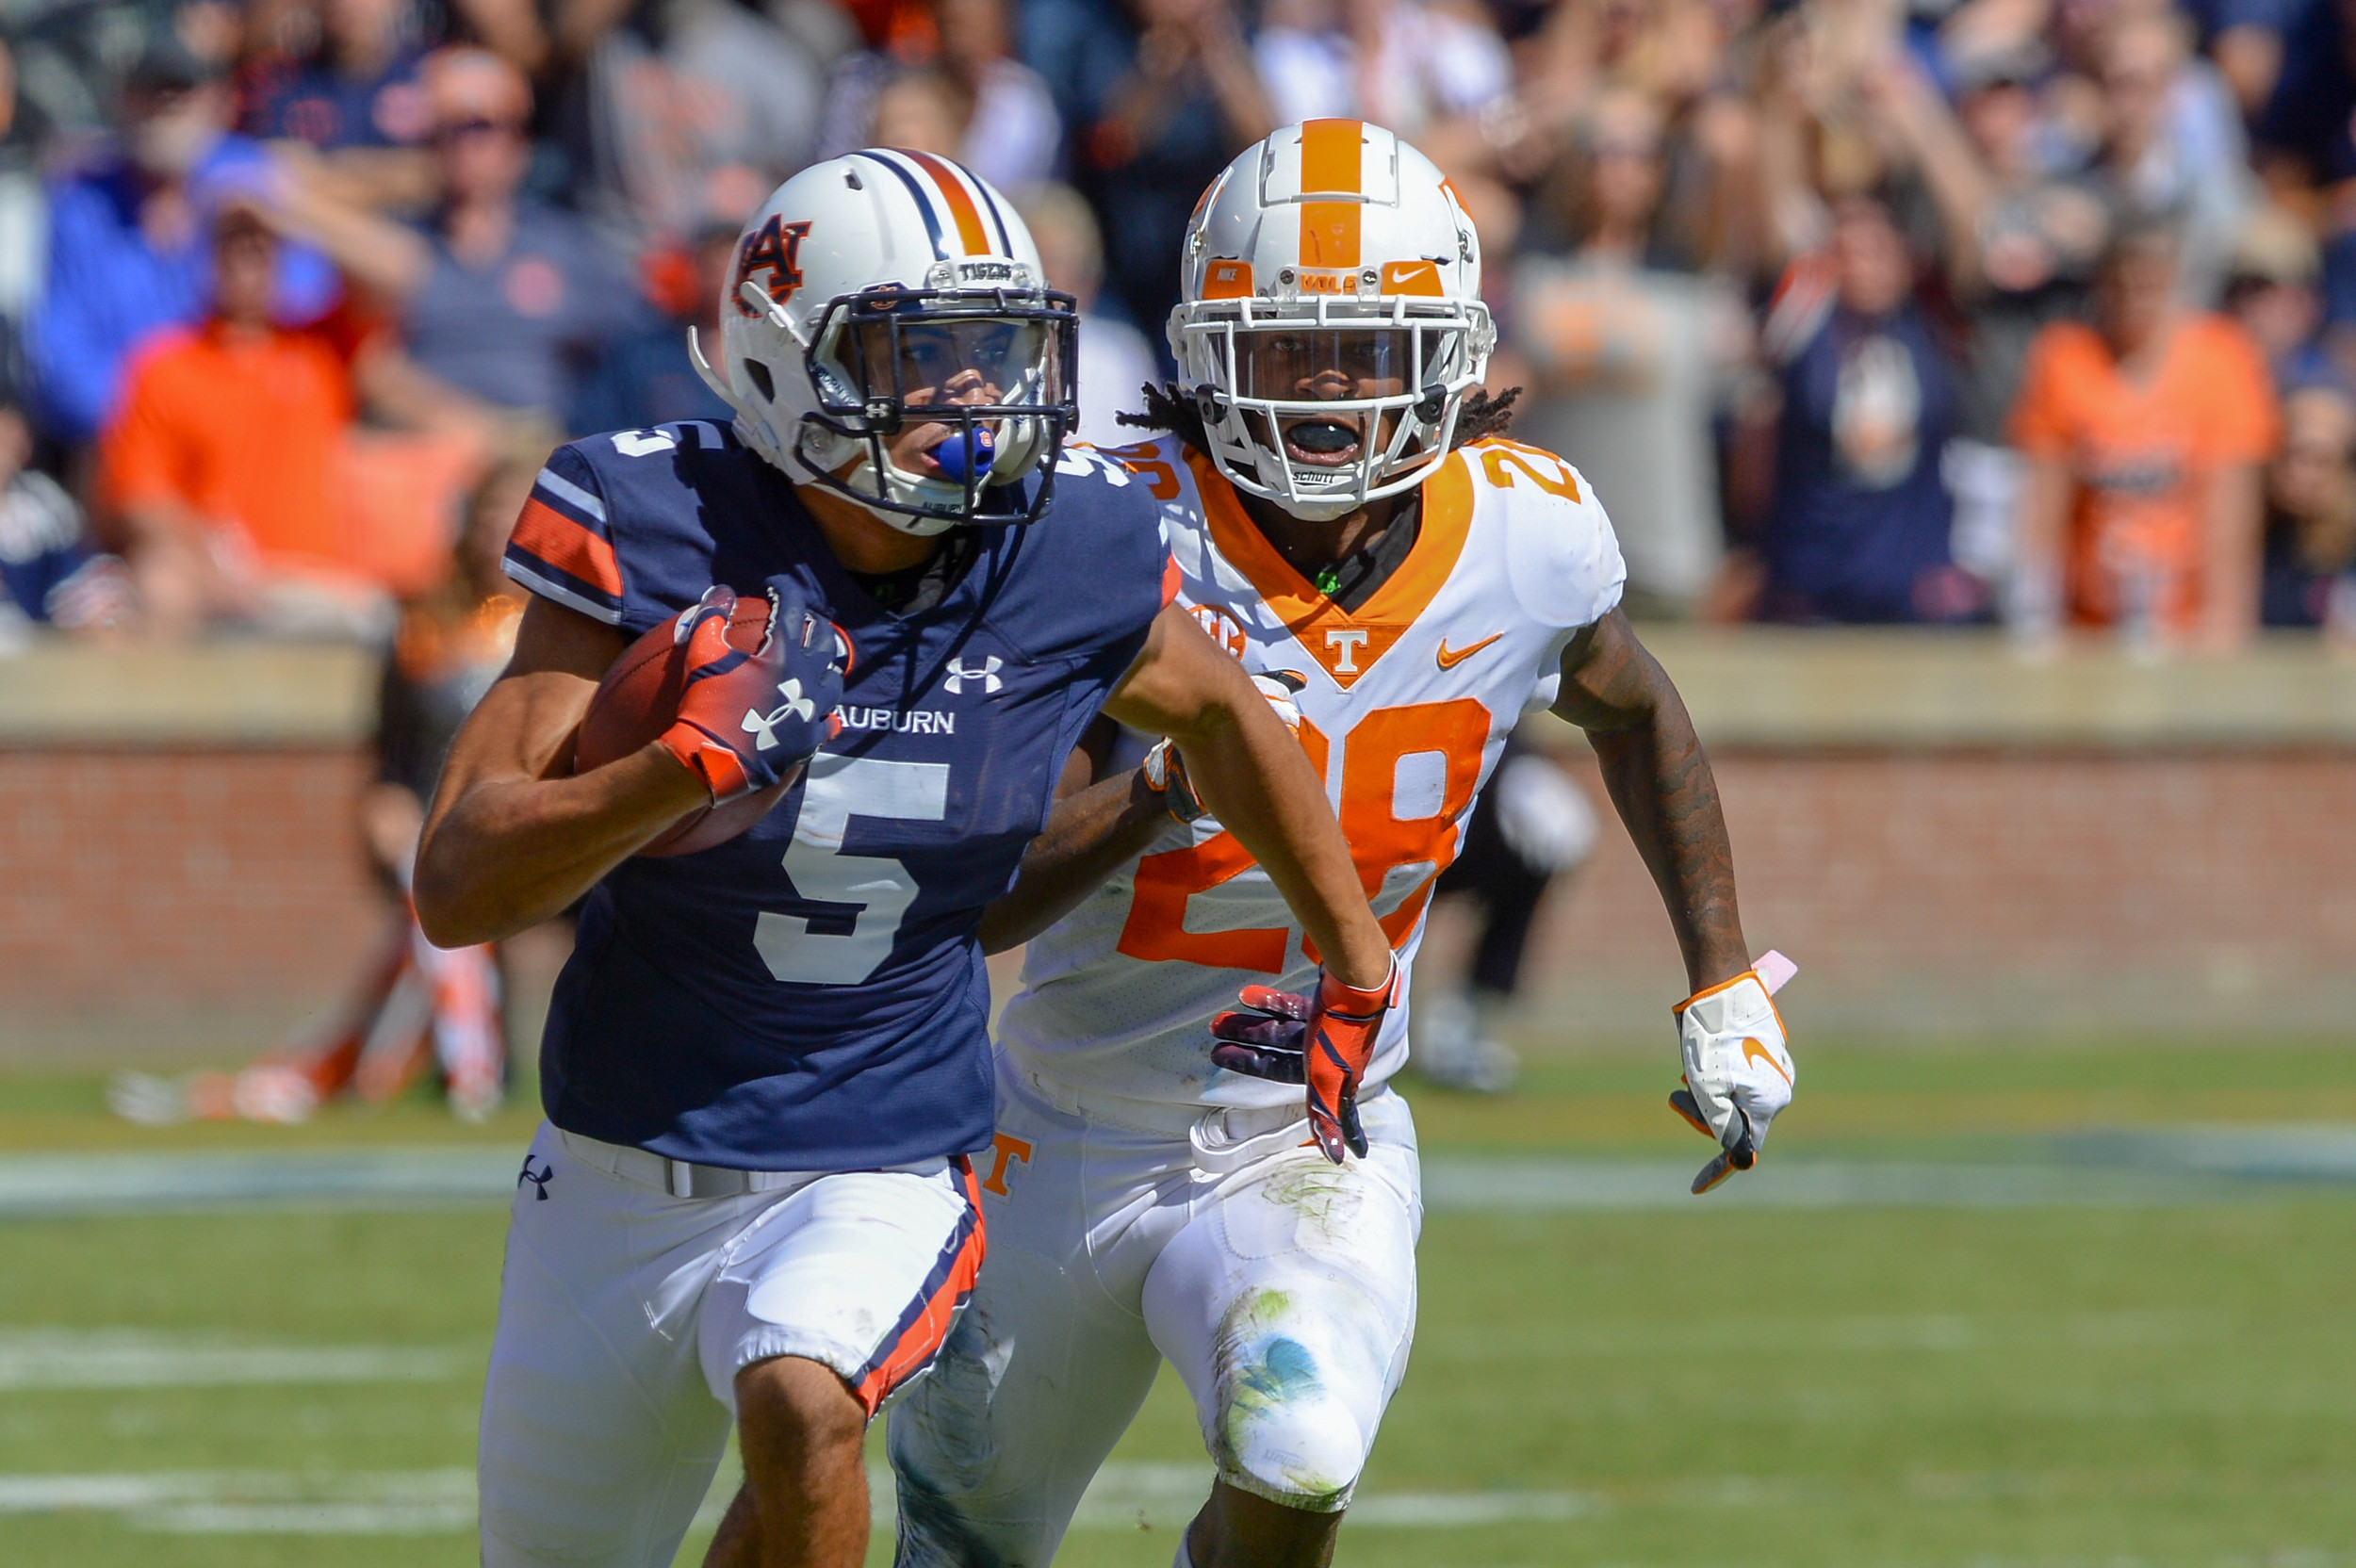 Auburn Tigers wide receiver Anthony Schwartz (5)out runs Tennessee Volunteers defensive back Baylen Buchanan (28) on the way to a 76 yard touchdown during the first half of Saturday's game, at Jordan-Hare Stadium in Auburn, AL. Daily Mountain Eagle -  Jeff Johnsey